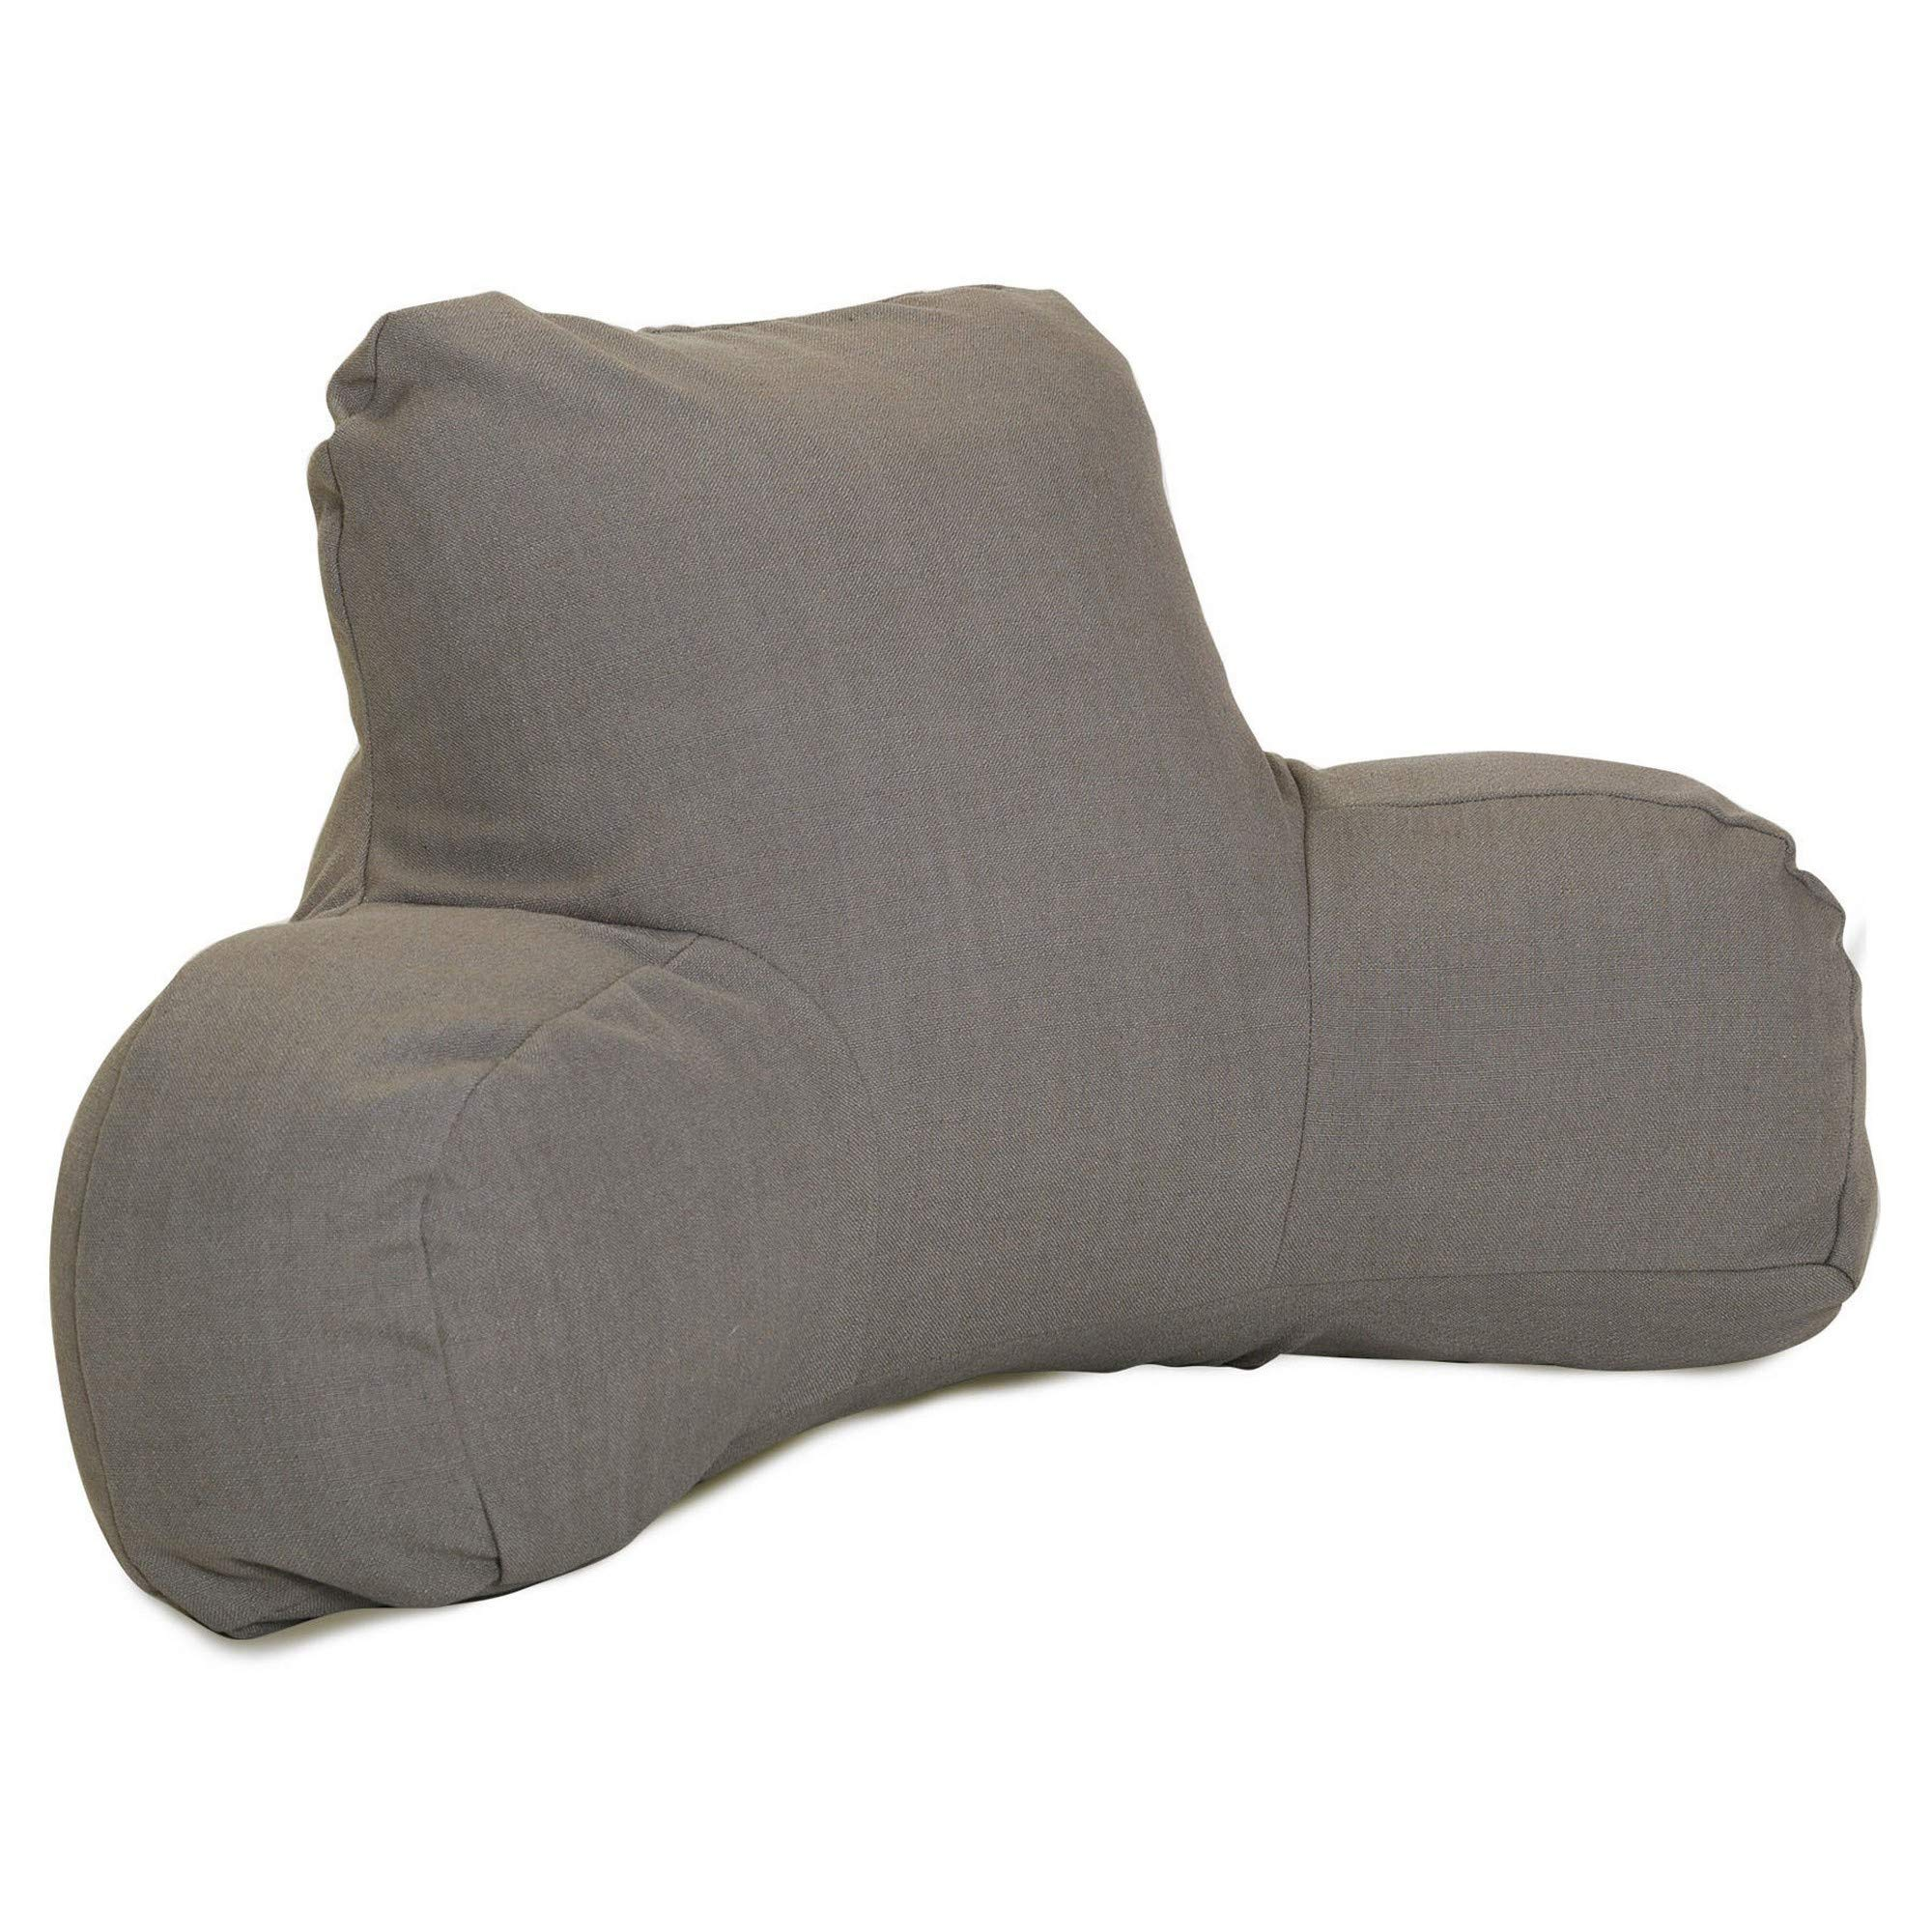 Majestic Home Goods Wales Reading Pillow, Gray by Majestic Home Goods